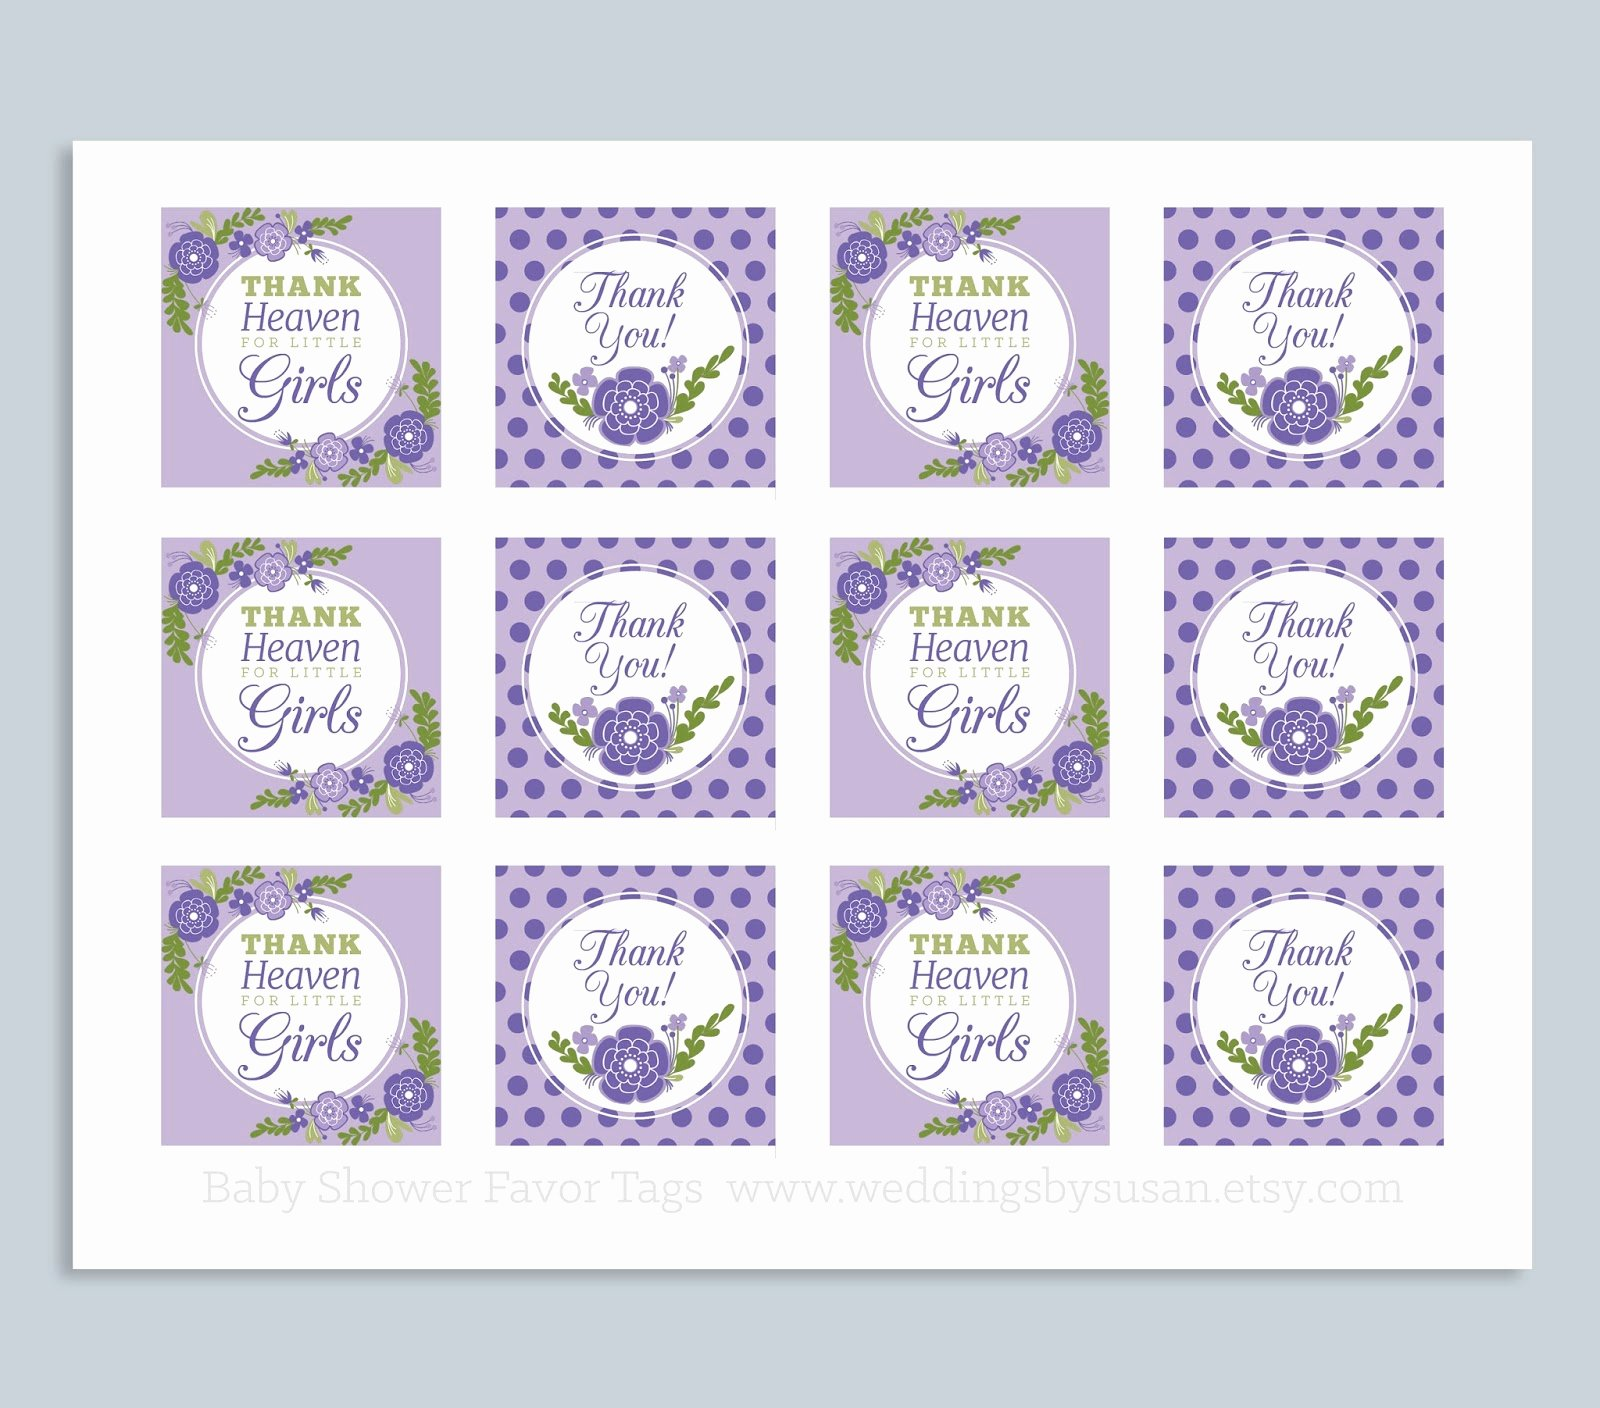 Free Printable Baby Shower Tags Elegant Weddings by Susan Printable Baby Shower Signs Games and